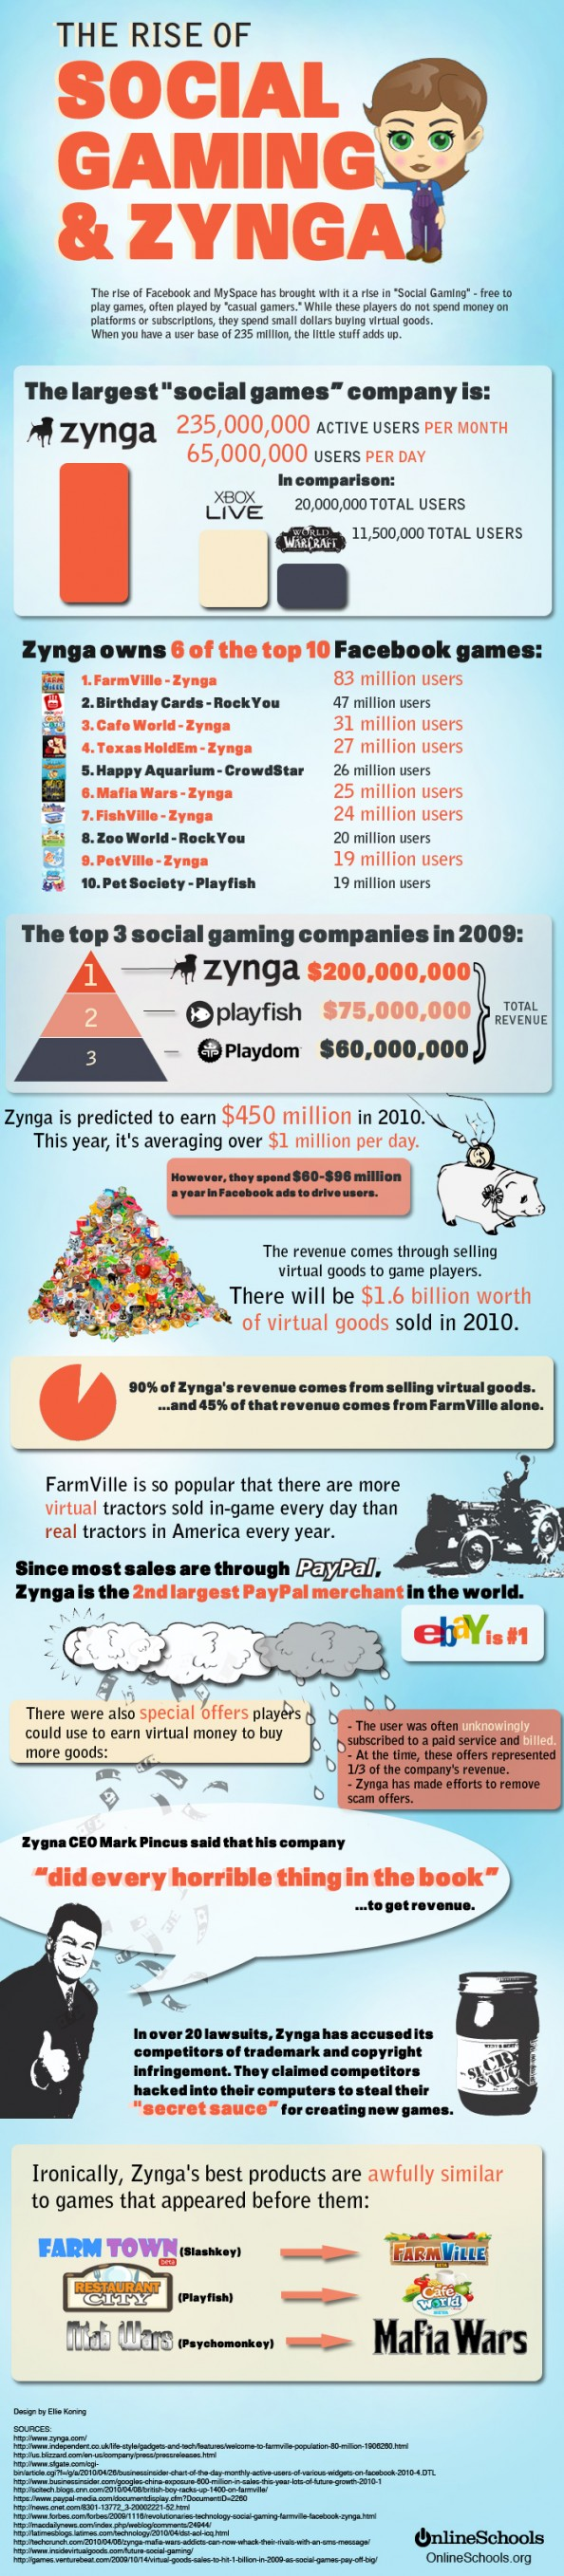 Rise of Social Gaming And Zynga Infographic Social media